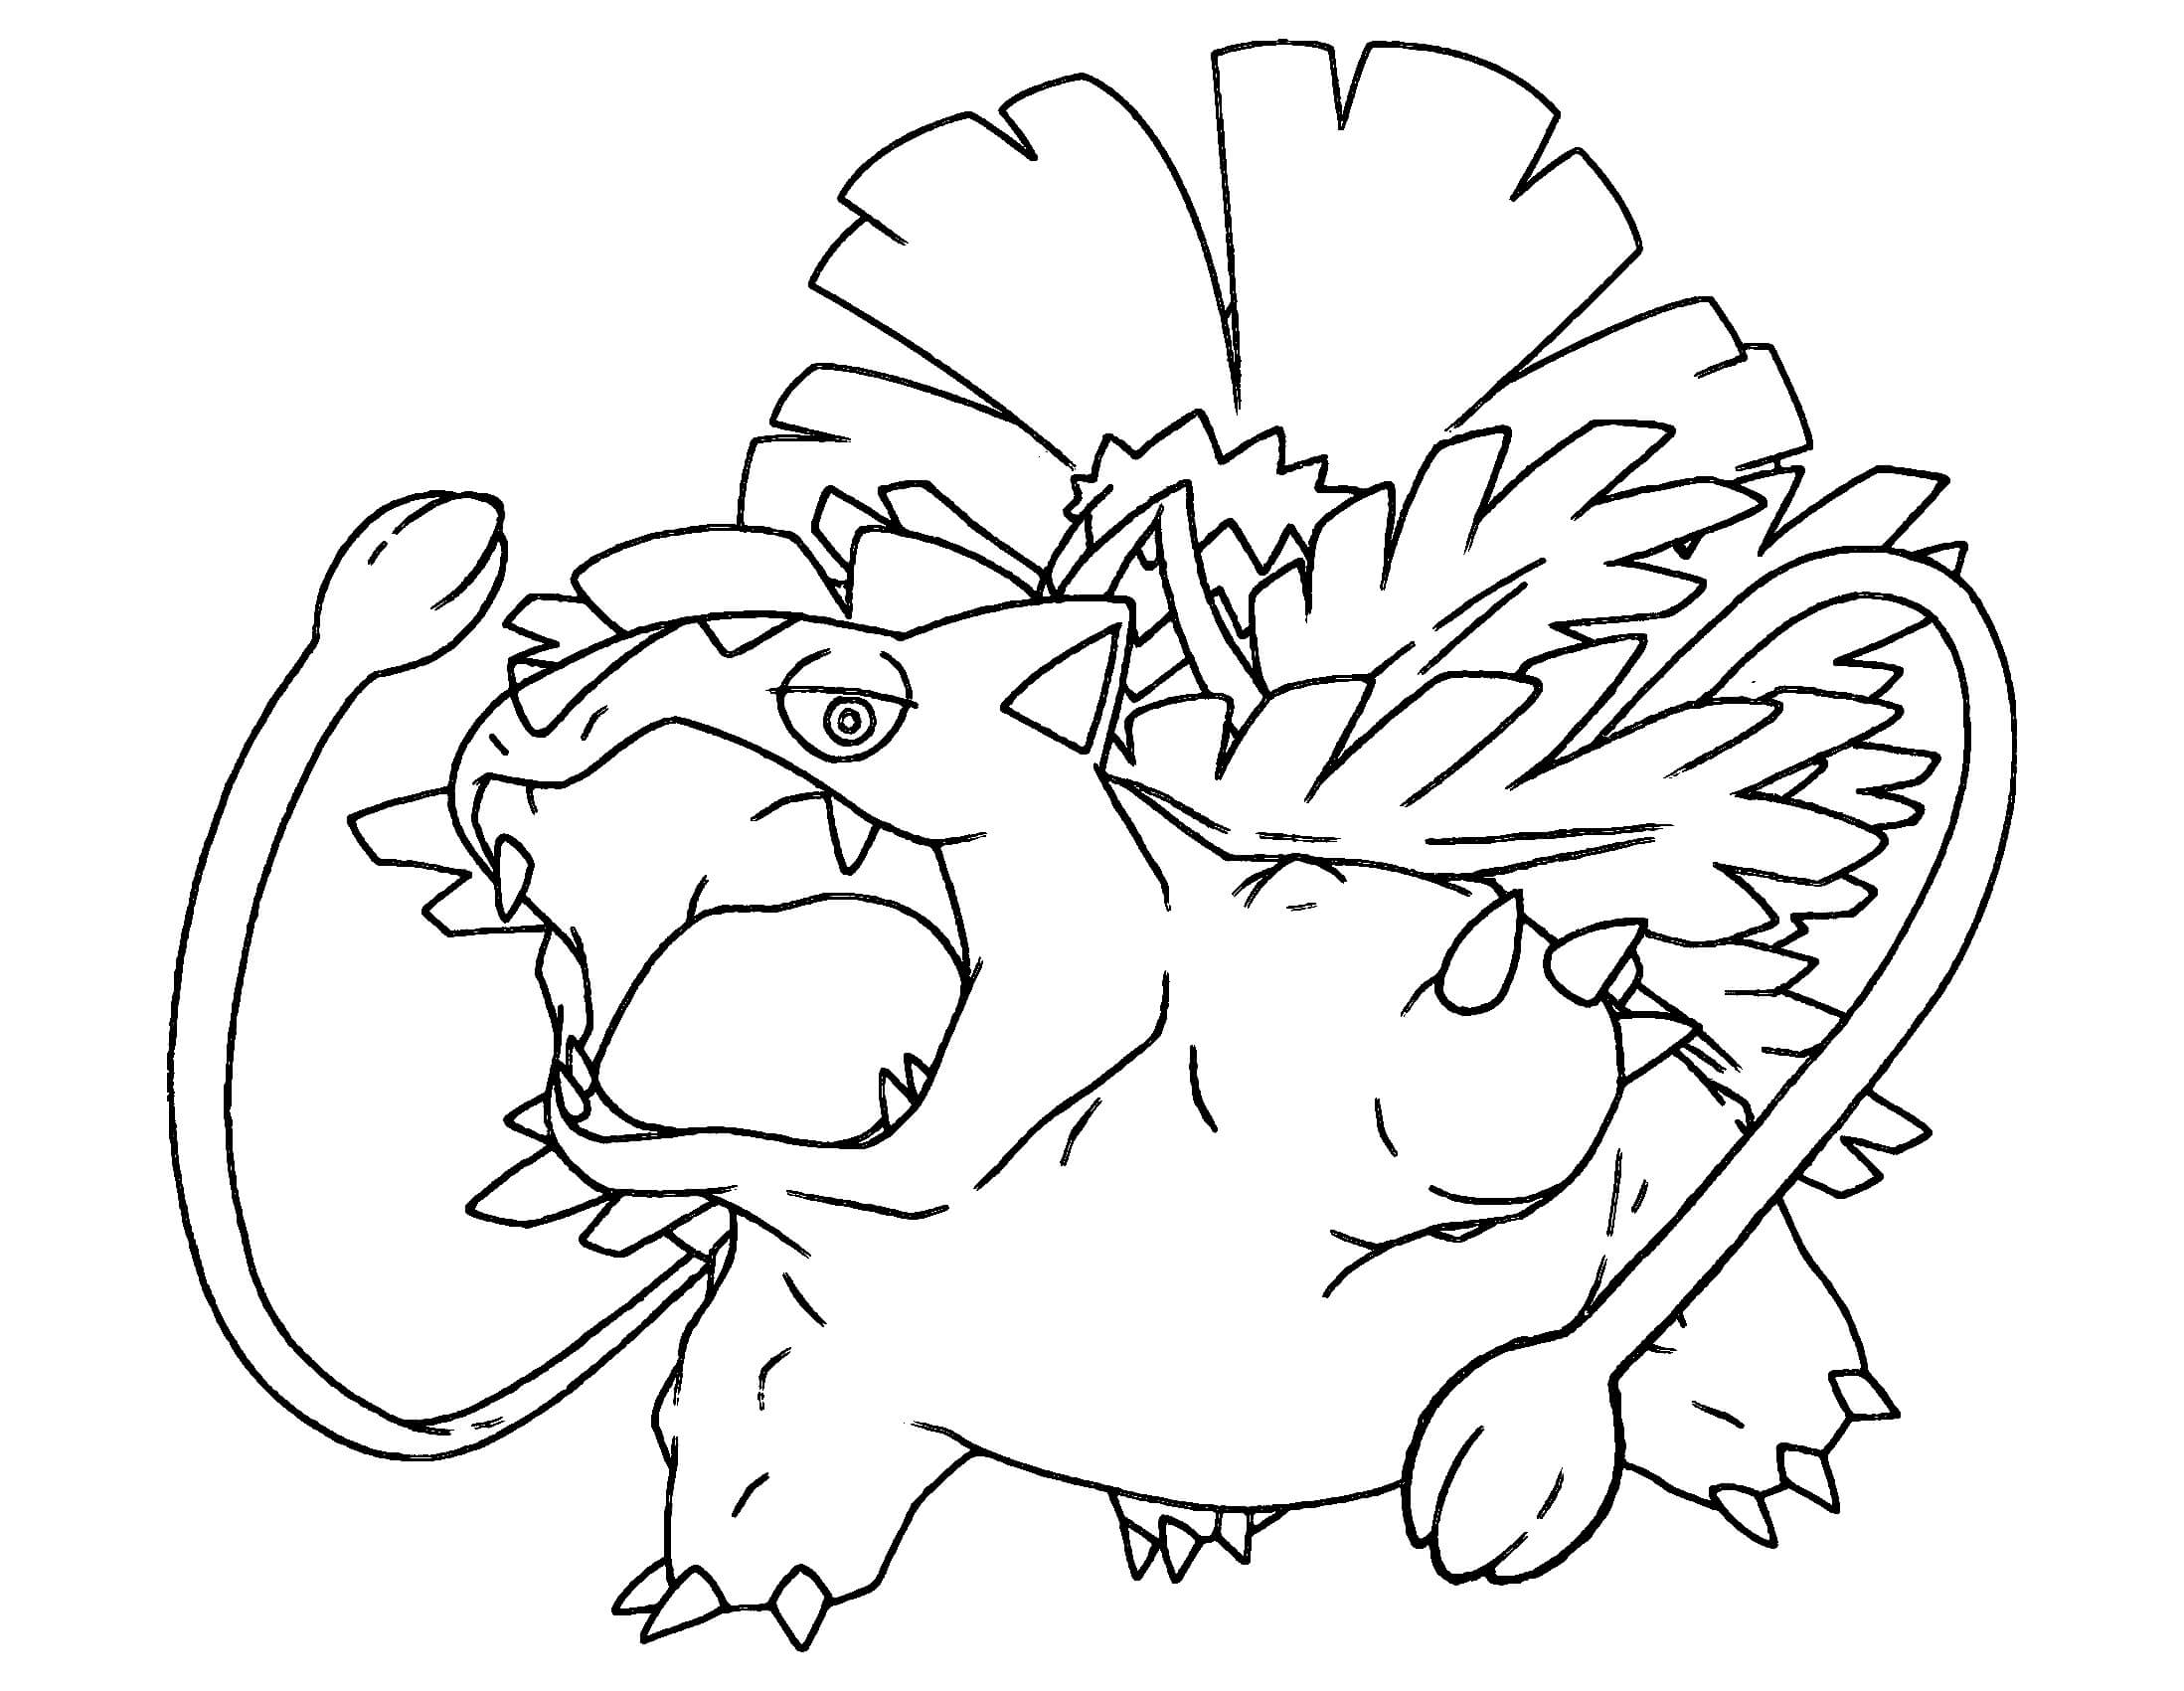 venusaur drawing at getdrawings free